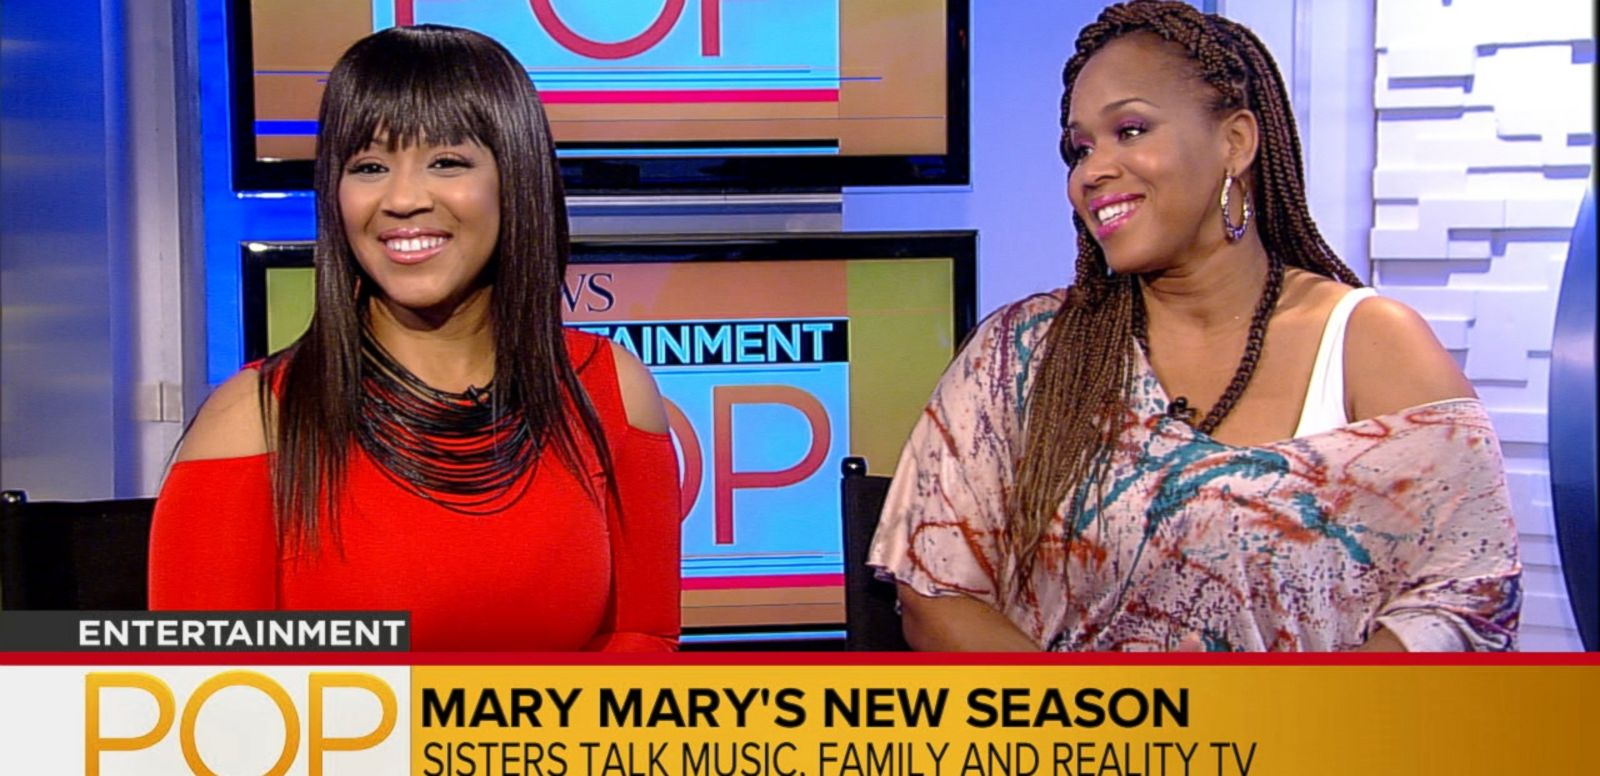 VIDEO: Singing sisters talk music, family and reality TV.